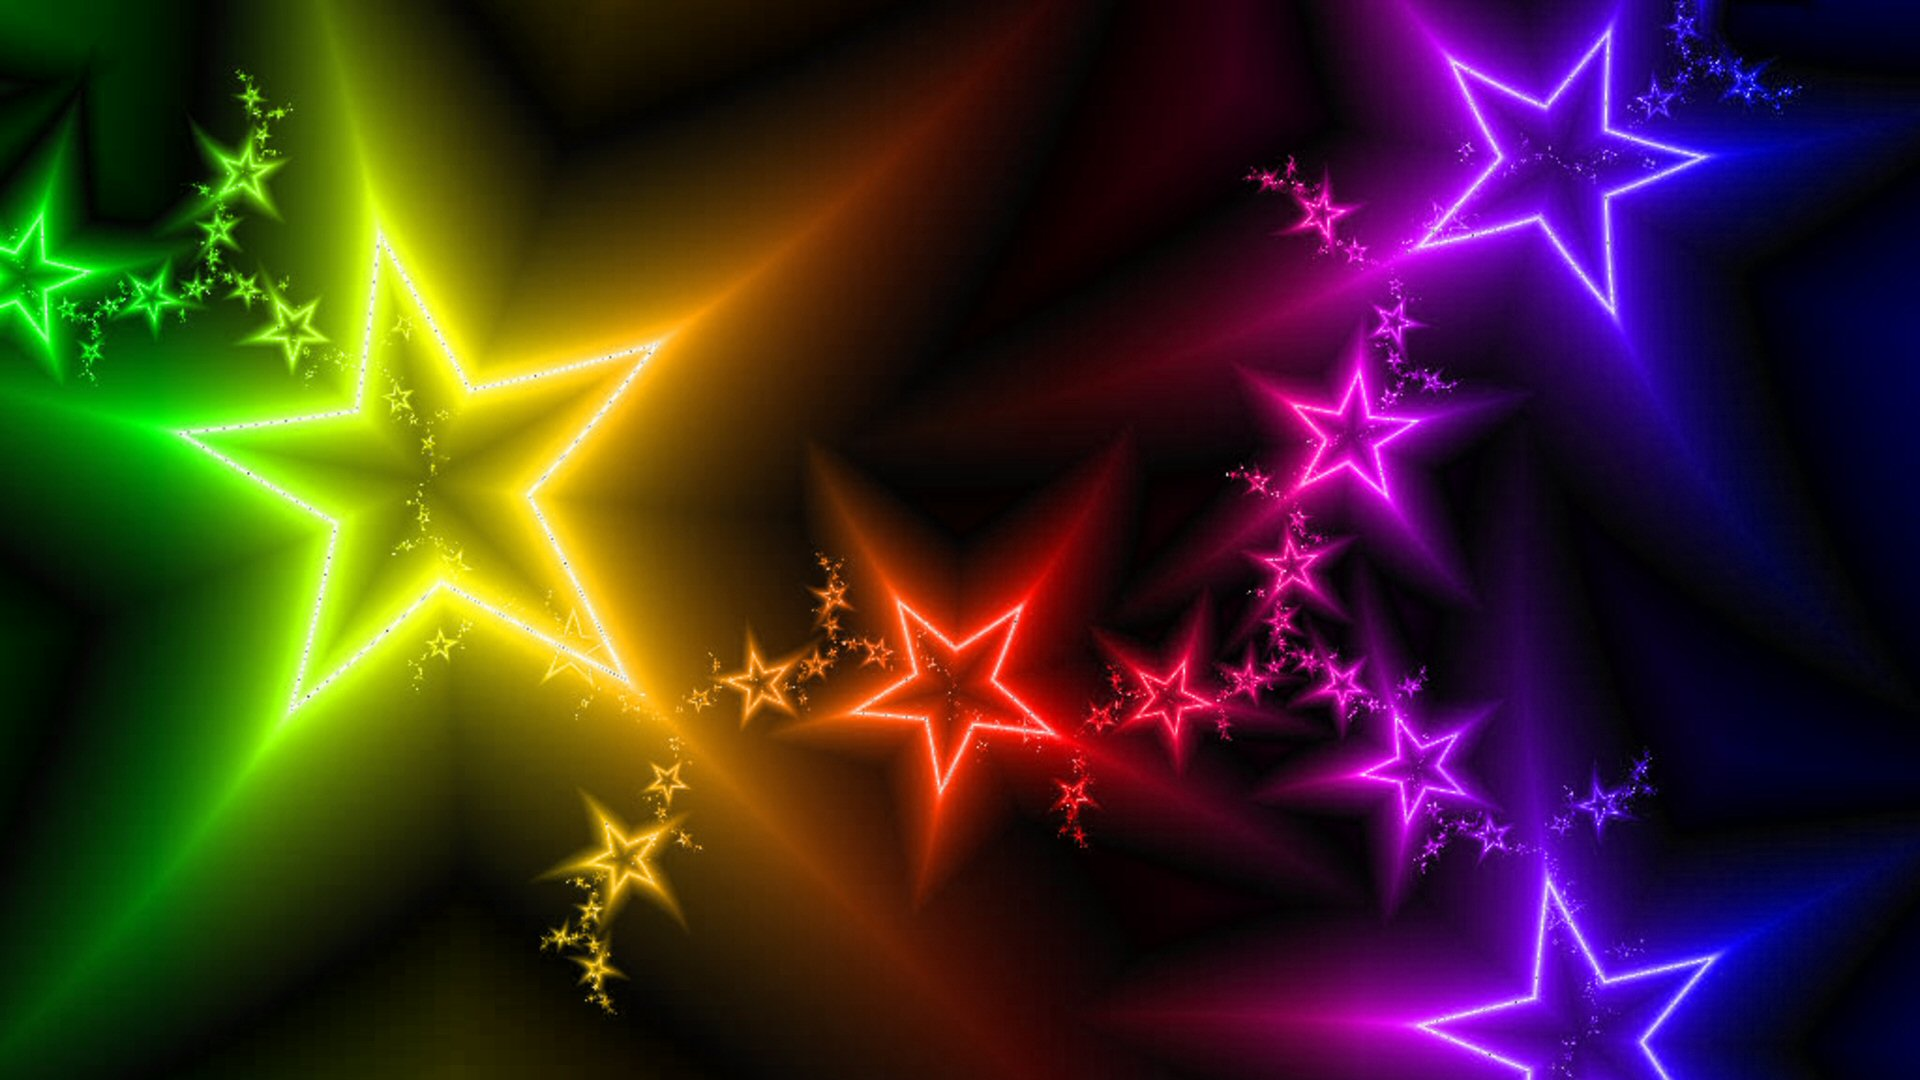 Download Colorful Star Background 19046 1920x1080 px High ...